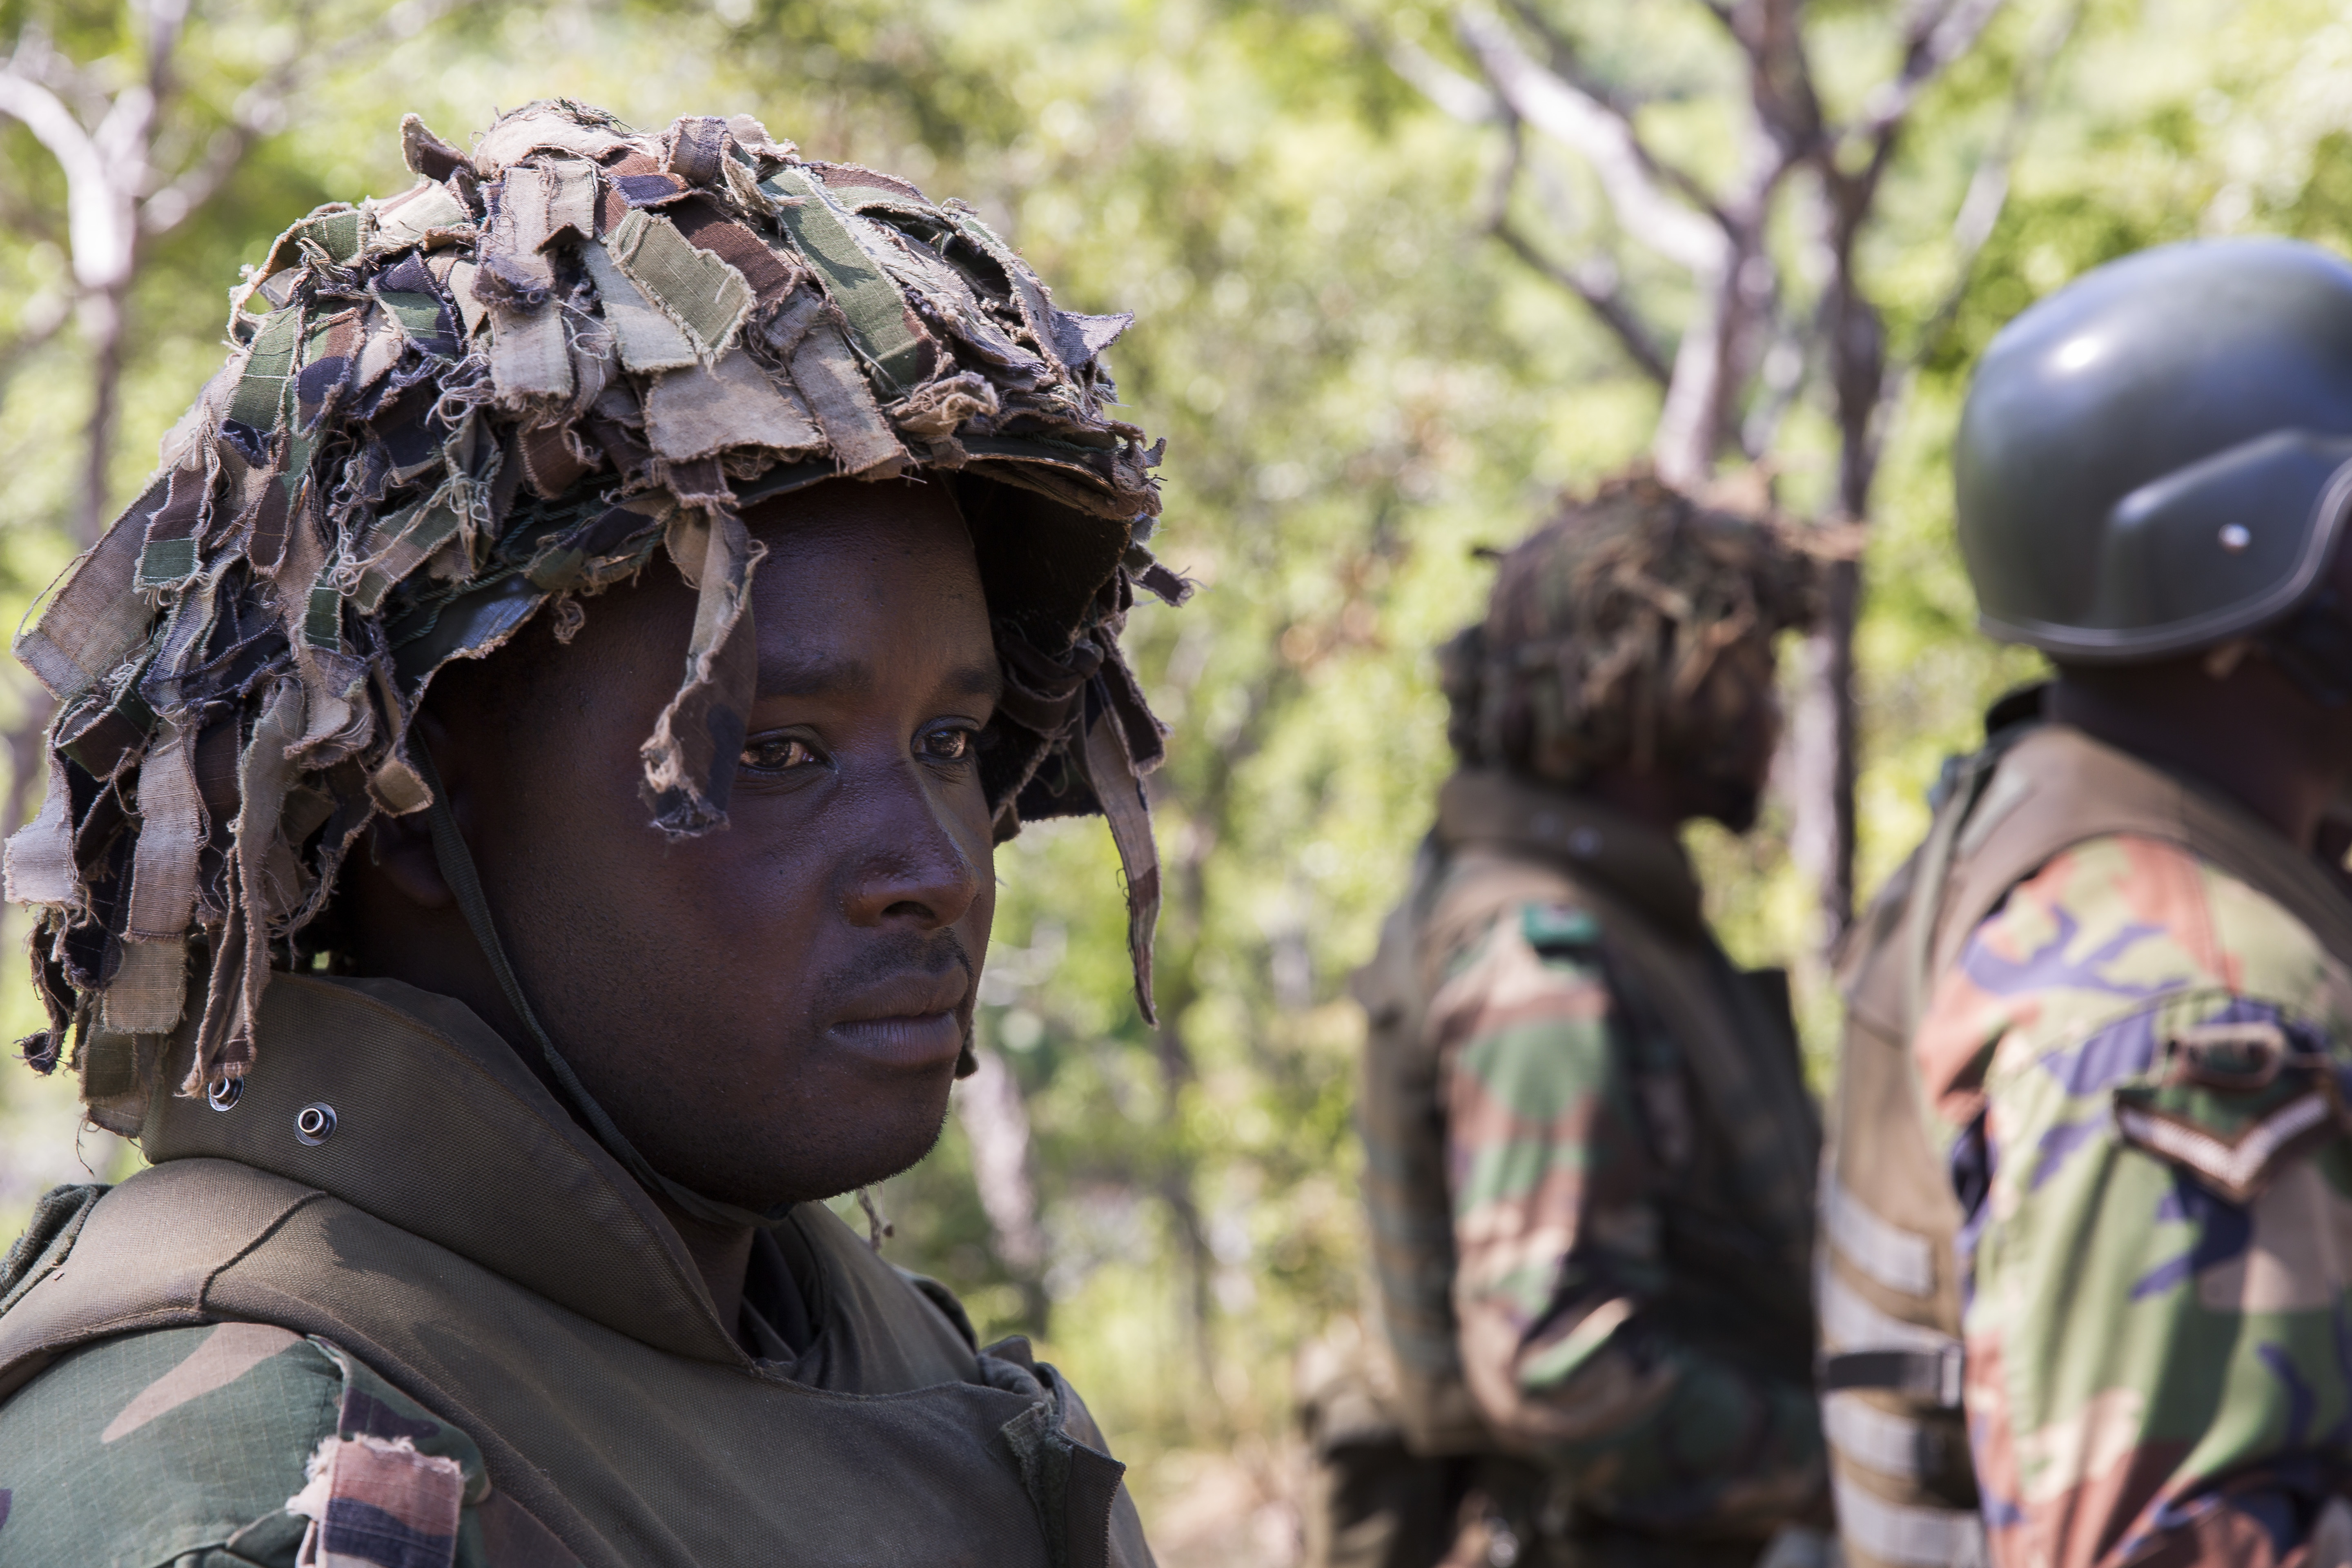 A soldier from the Malawi Defence Force stands in formation while graduating the Malawi Battalion Training Course in Malawi, Africa, May 31, 2018. U.S. Africa Command Senior Enlisted Leader Command Chief Master Sgt. Ramon Colon-Lopez and his team traveled to the MALBAT Training Site to follow-up on issues addressed by the MDF during the Africa Senior Enlisted Leader Conference in November 2017, and to assess the MDF's capability to train and sustain Peace Keeping Operations Forces.